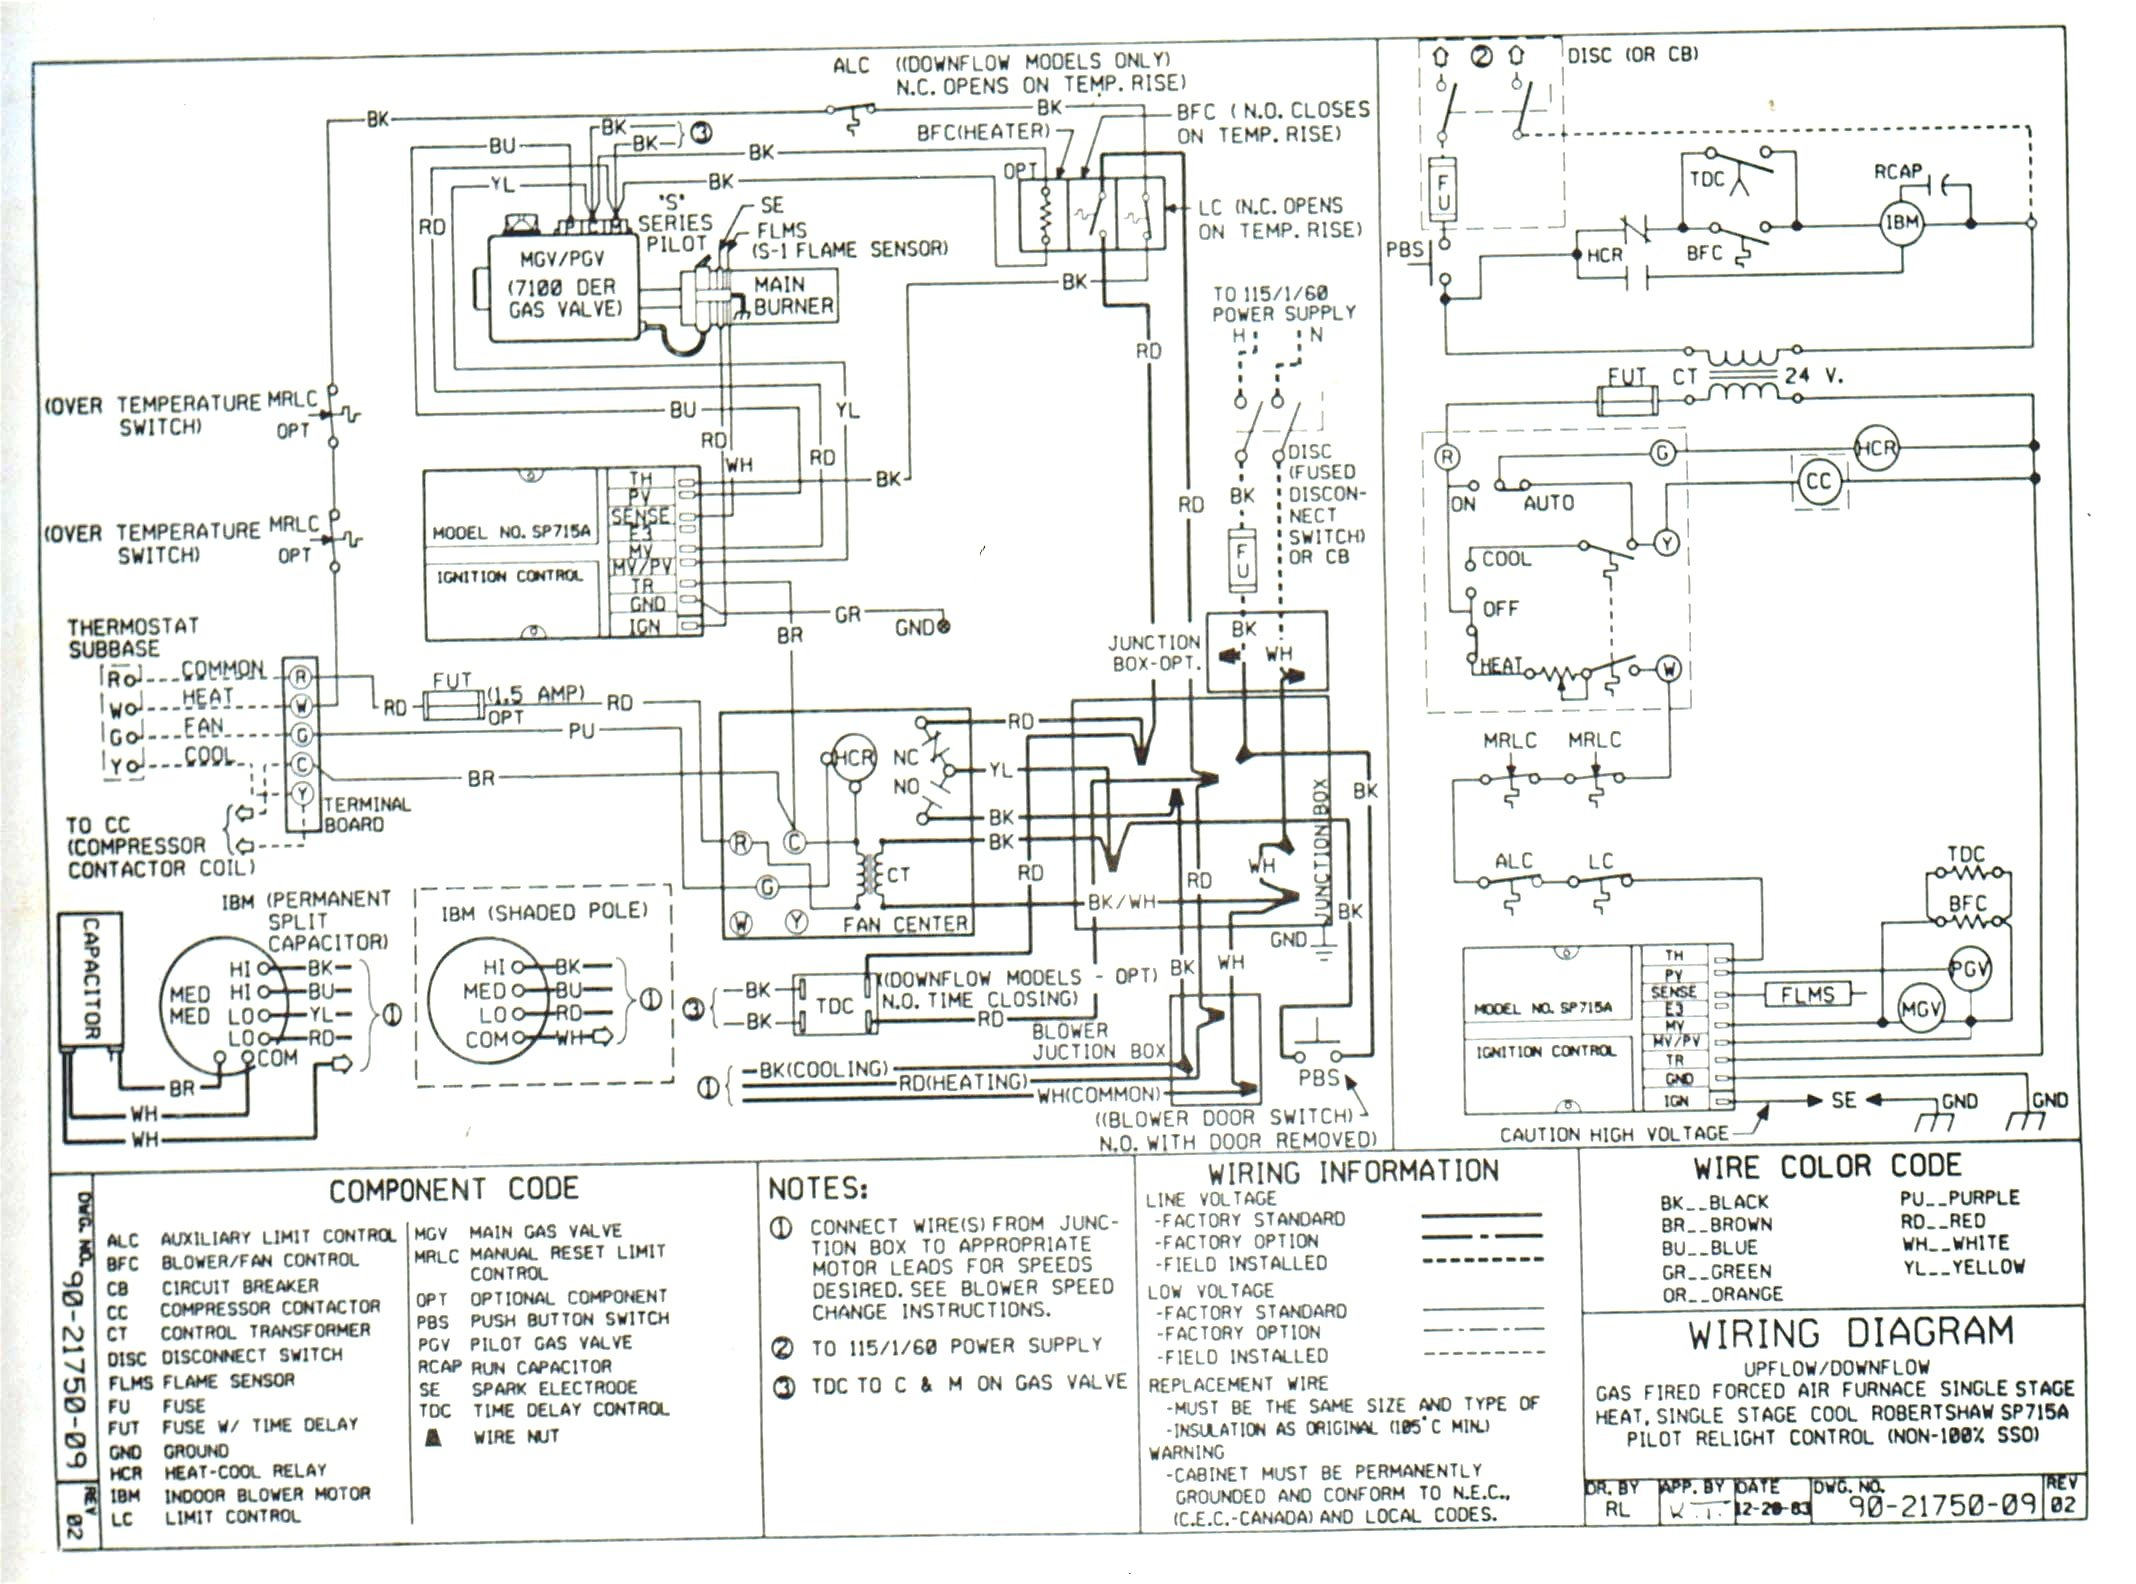 General Electric Air Compressor Wiring Diagram Schematics Ge Motor 5kcr49sn2137x Furnace Aruf Wire Center U2022 240 Volt